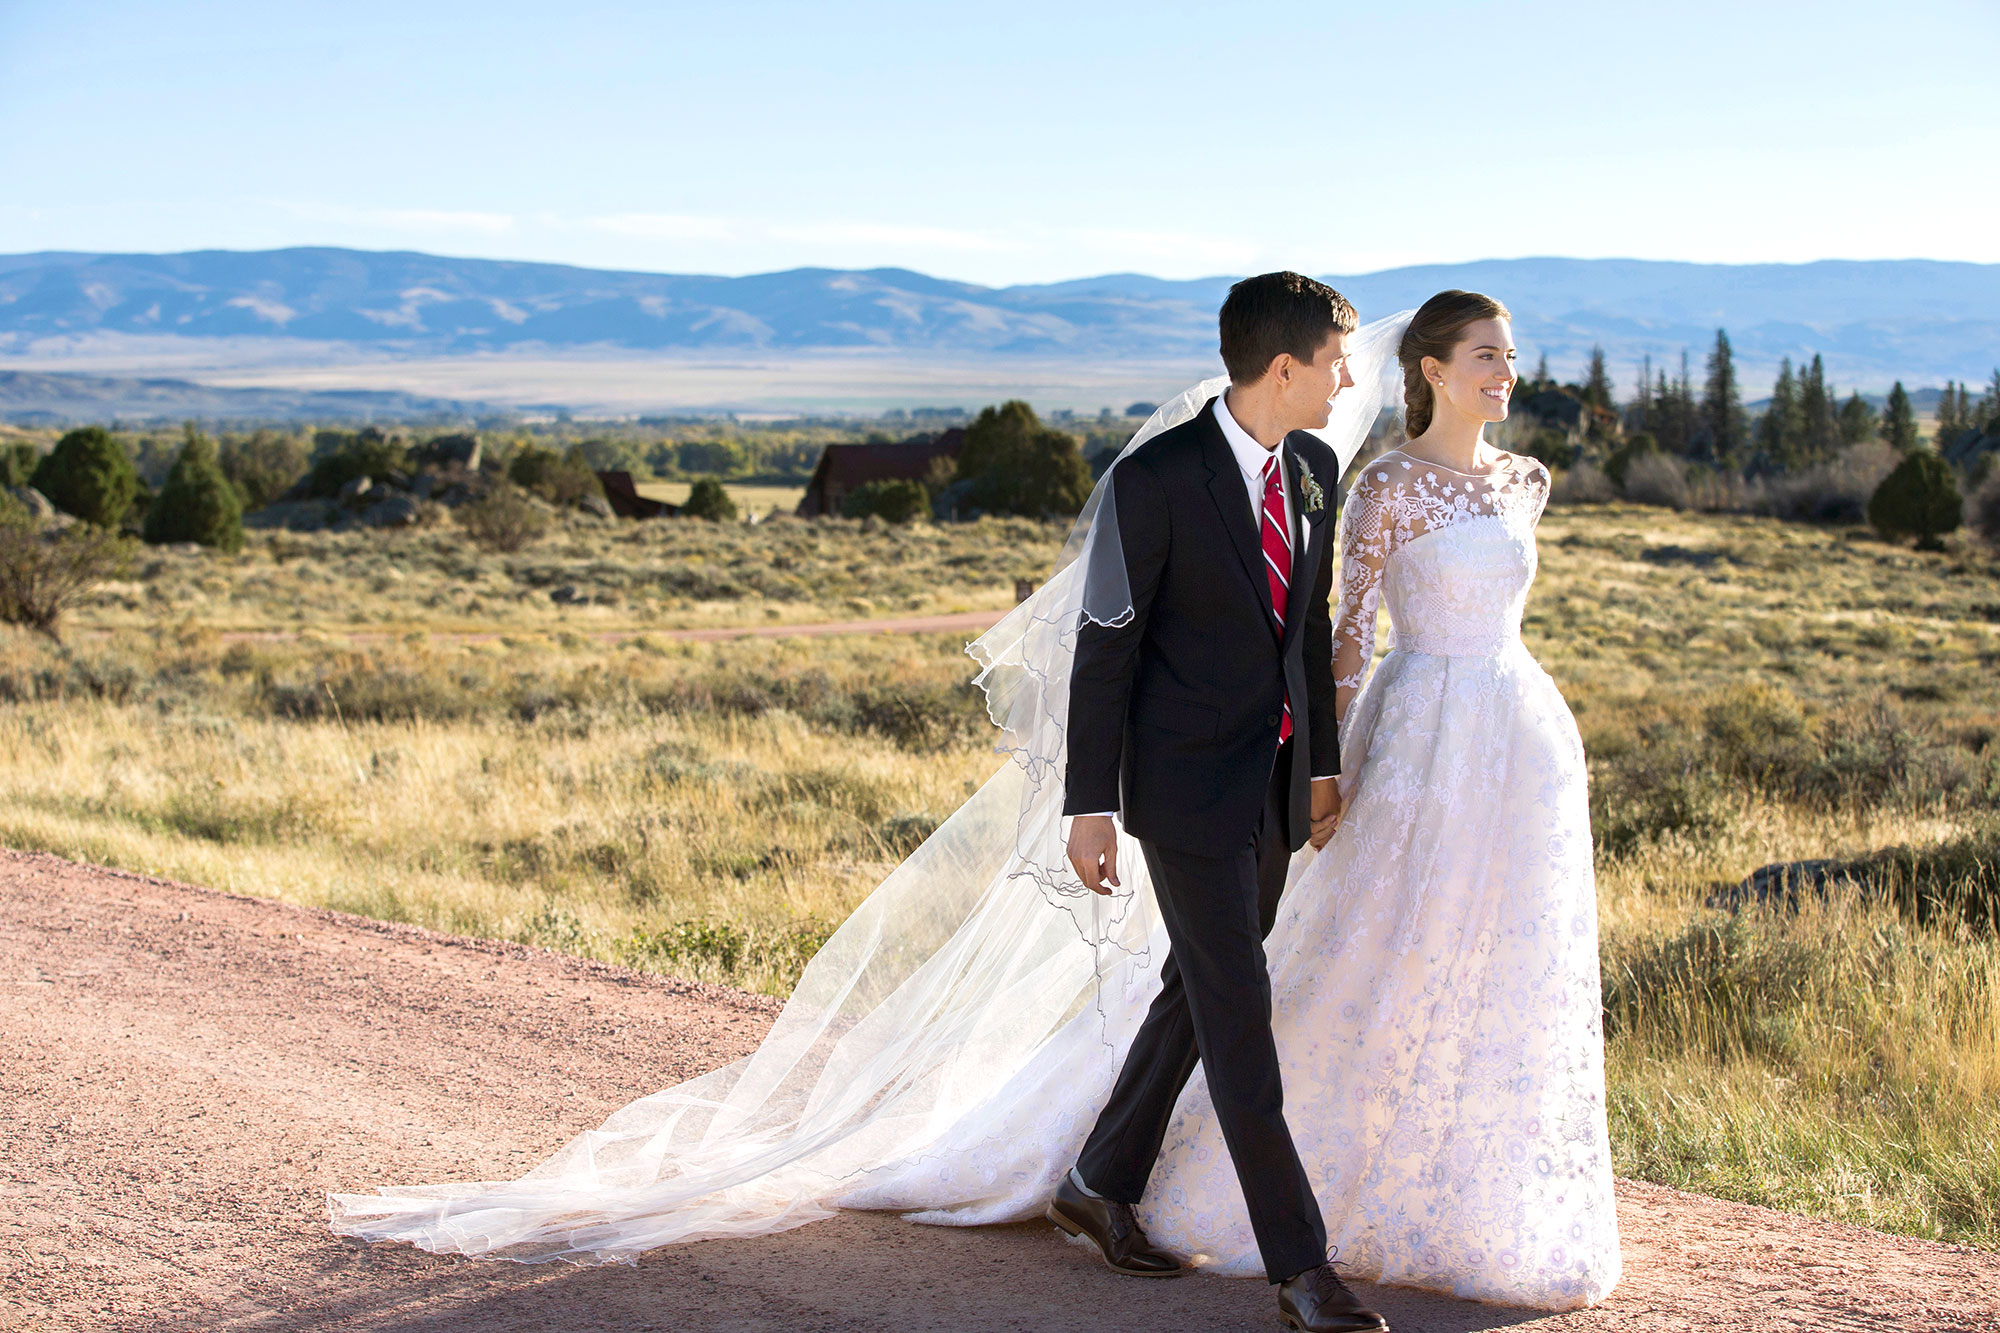 15 best celebrity wedding dresses of all time photos allison williams ombrellifo Gallery